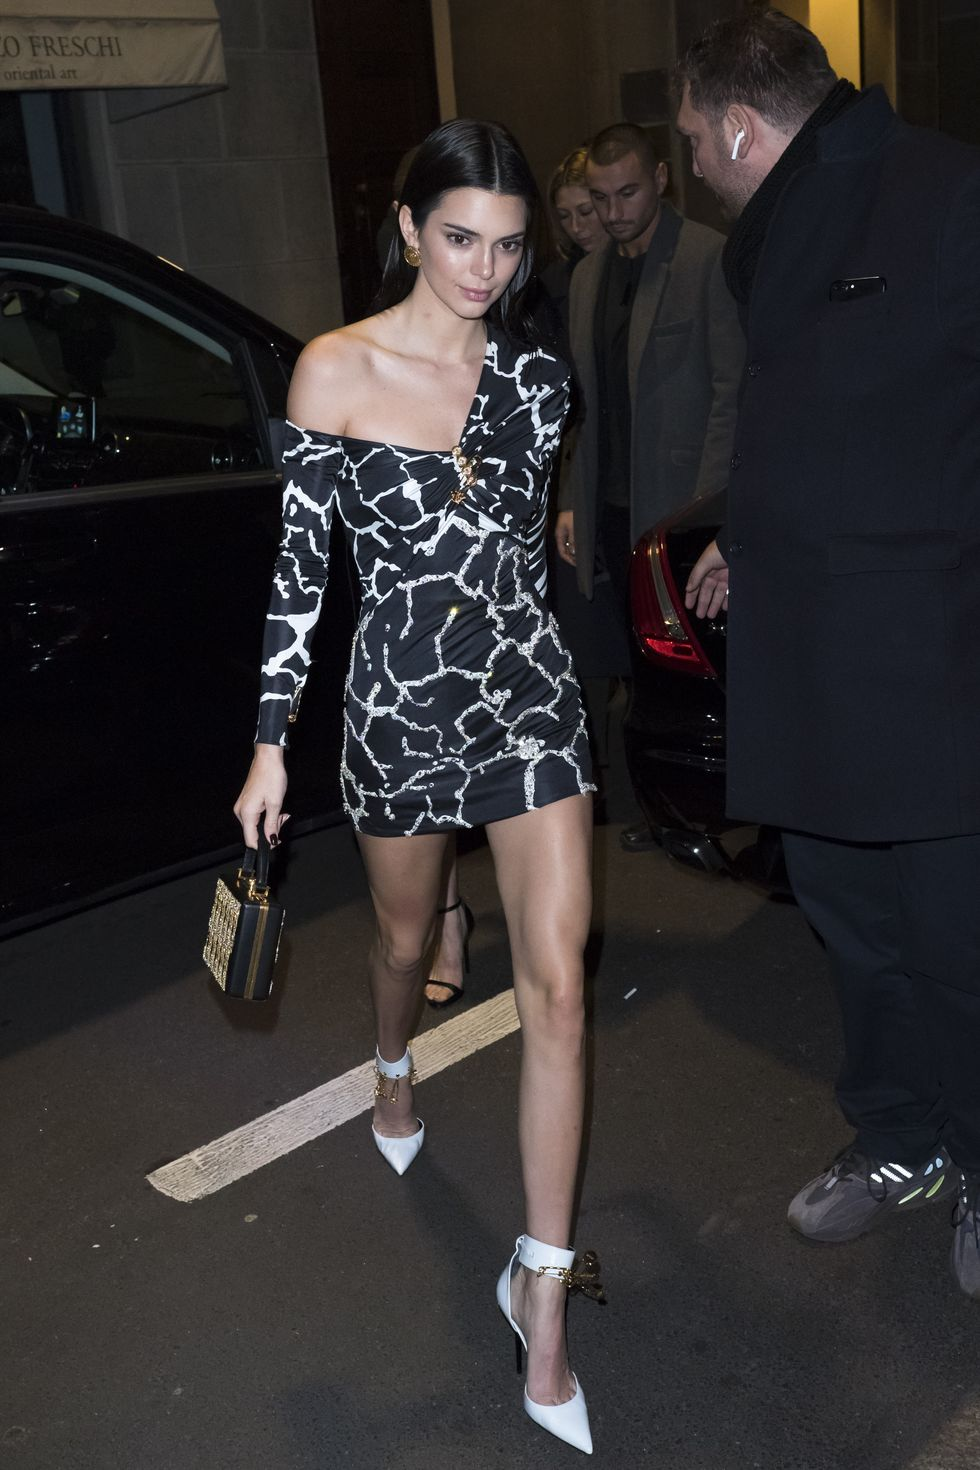 February 22, 2019 Kendall made her entrance at the Versace dinner during Milan Fashion Week in a black-and-white printed one-shoulder dress and white heels.